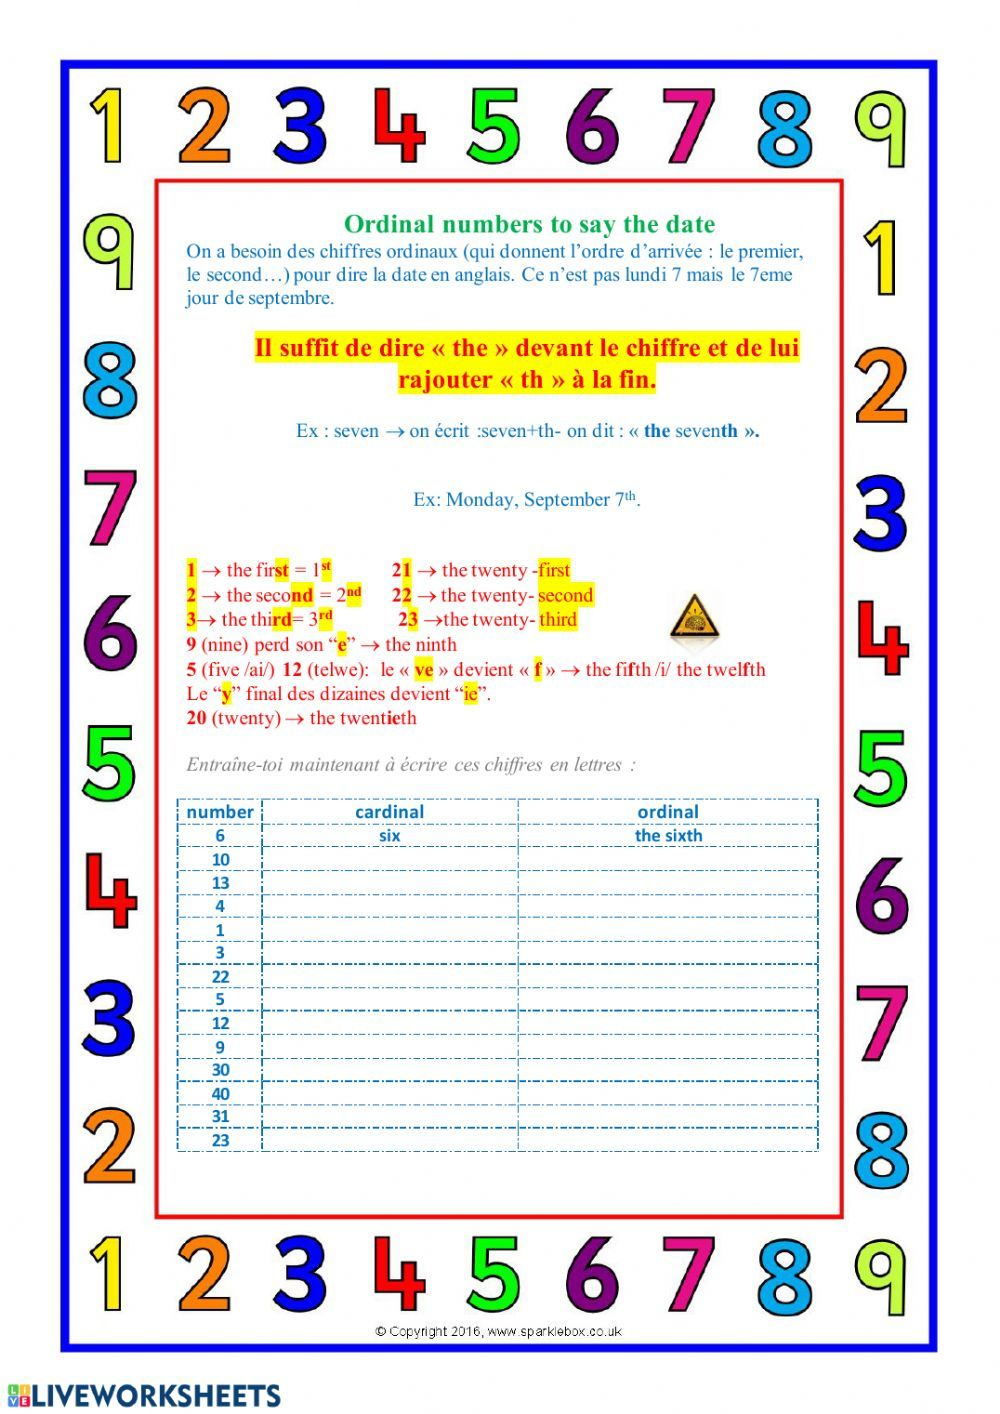 Say the date - Interactive worksheet   Reading comprehension worksheets [ 1414 x 1000 Pixel ]